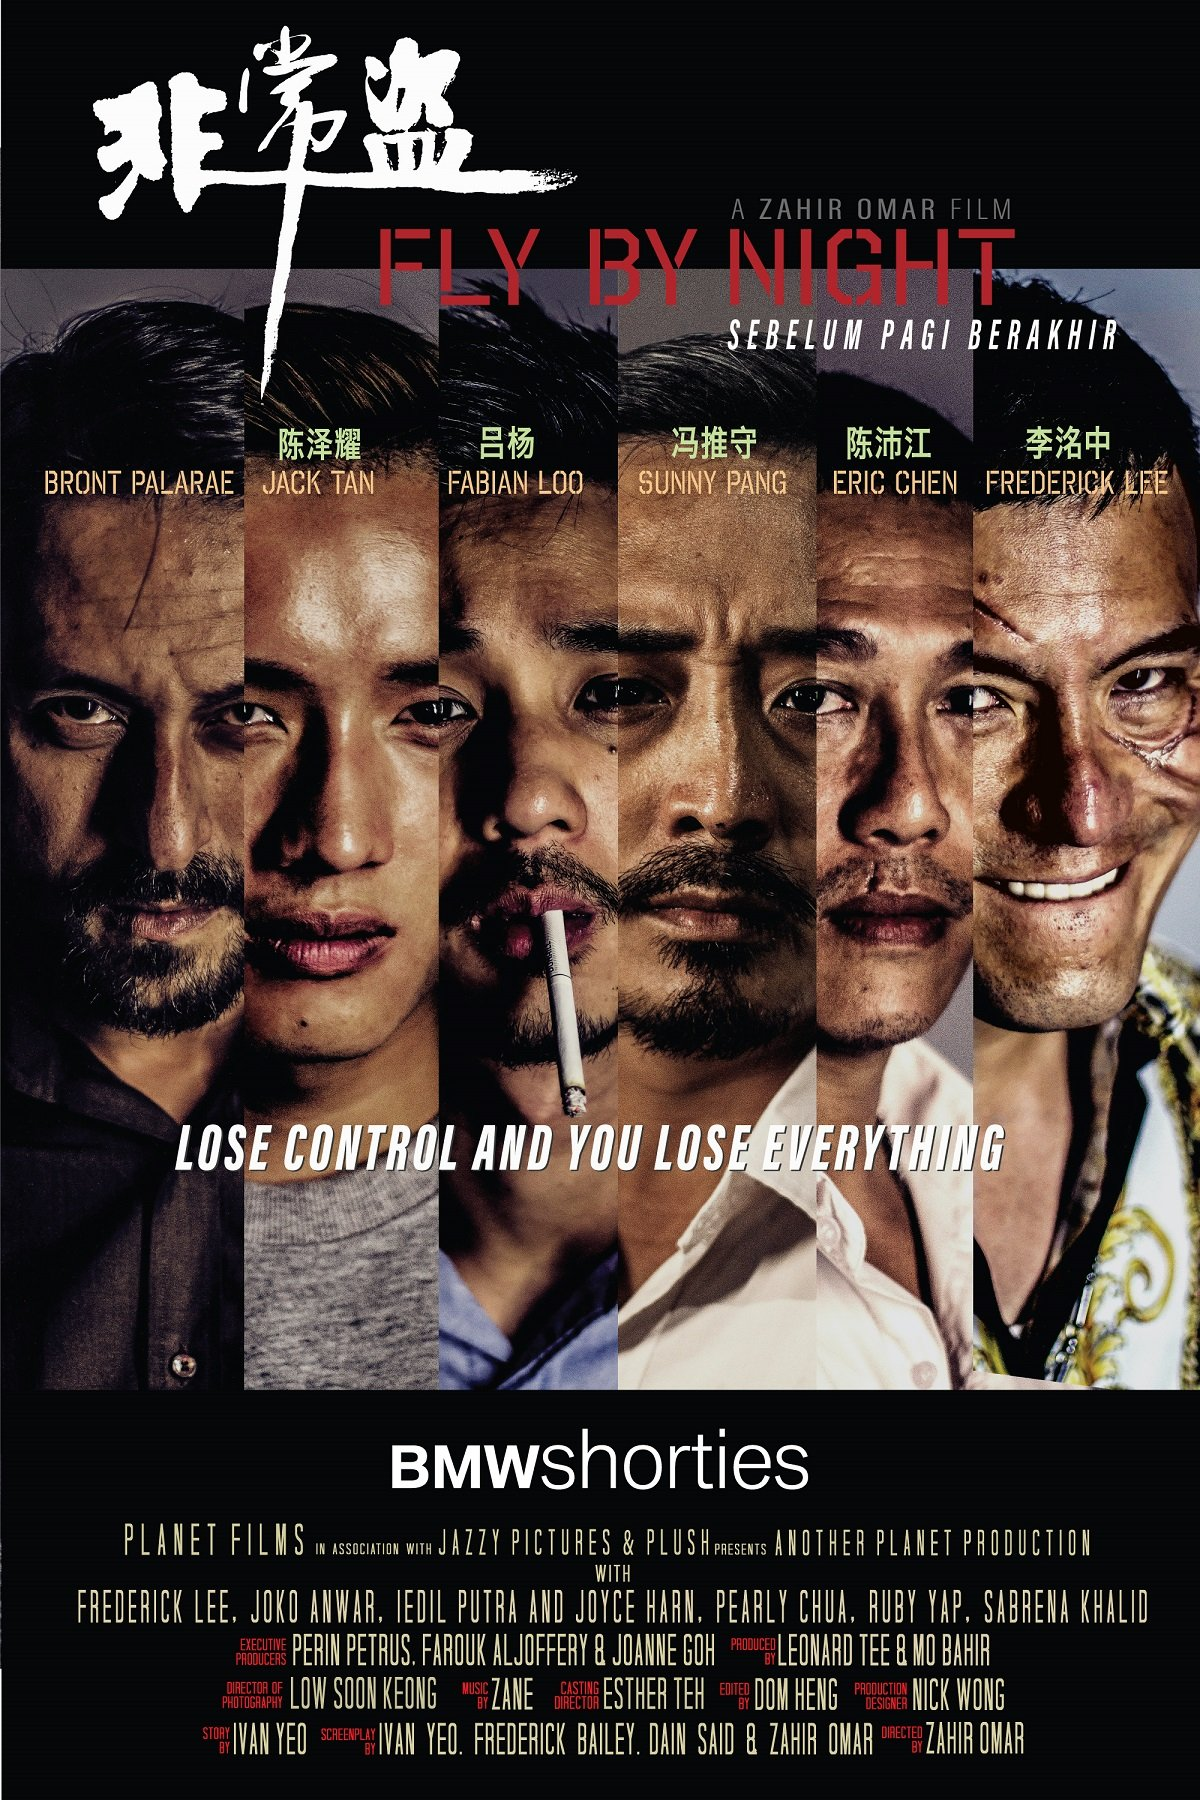 BMW Group Malaysia supports Fly By Night, a film by Zahir Omar, Grand Prize Winner of the first BMW Shorties in 2007.